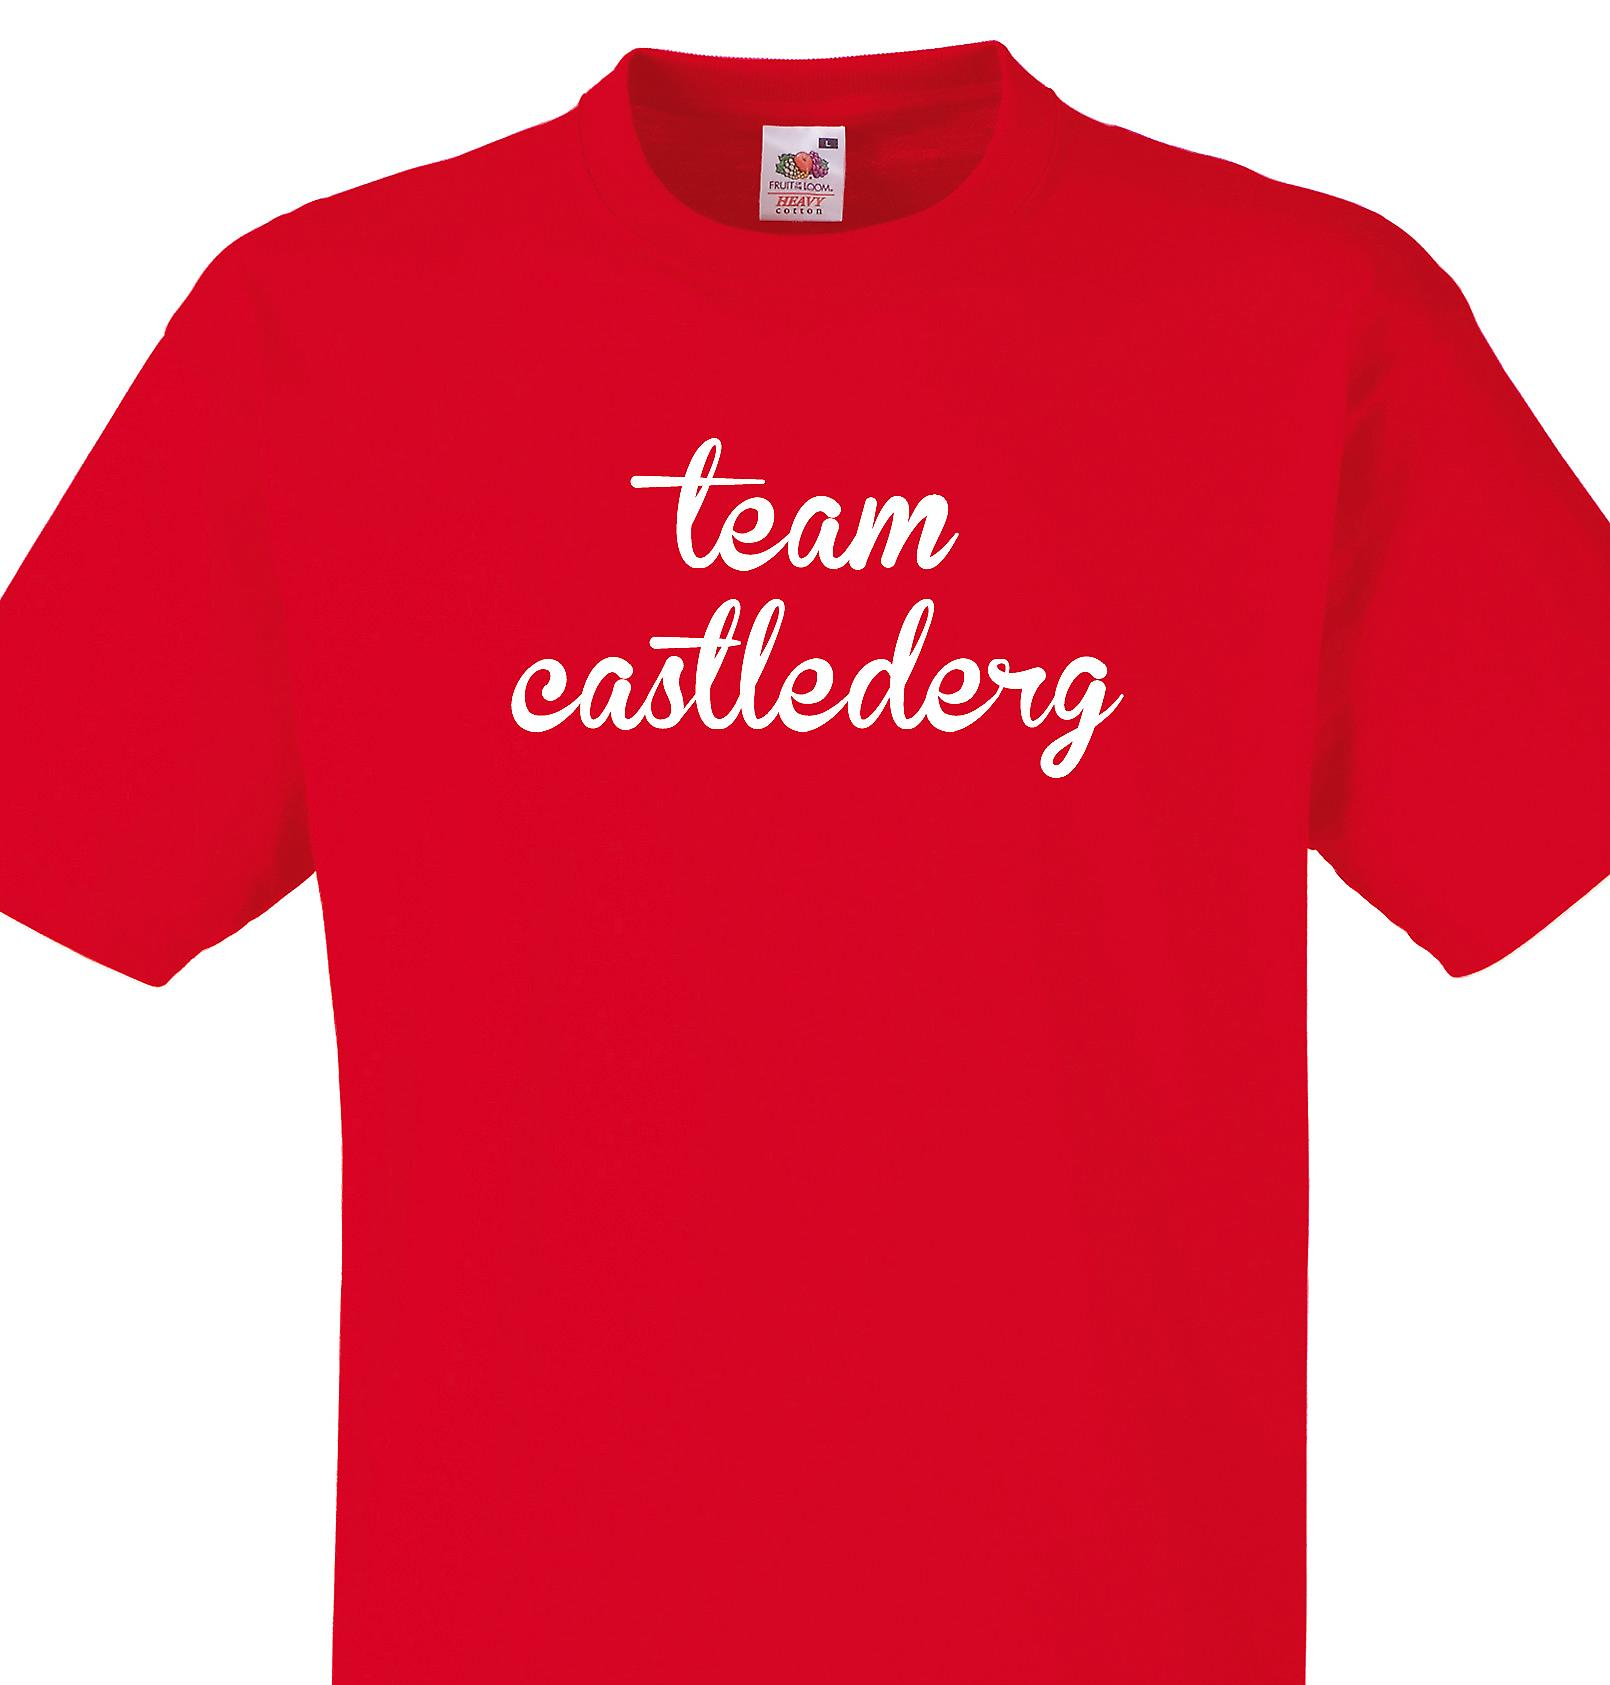 Team Castlederg Red T shirt